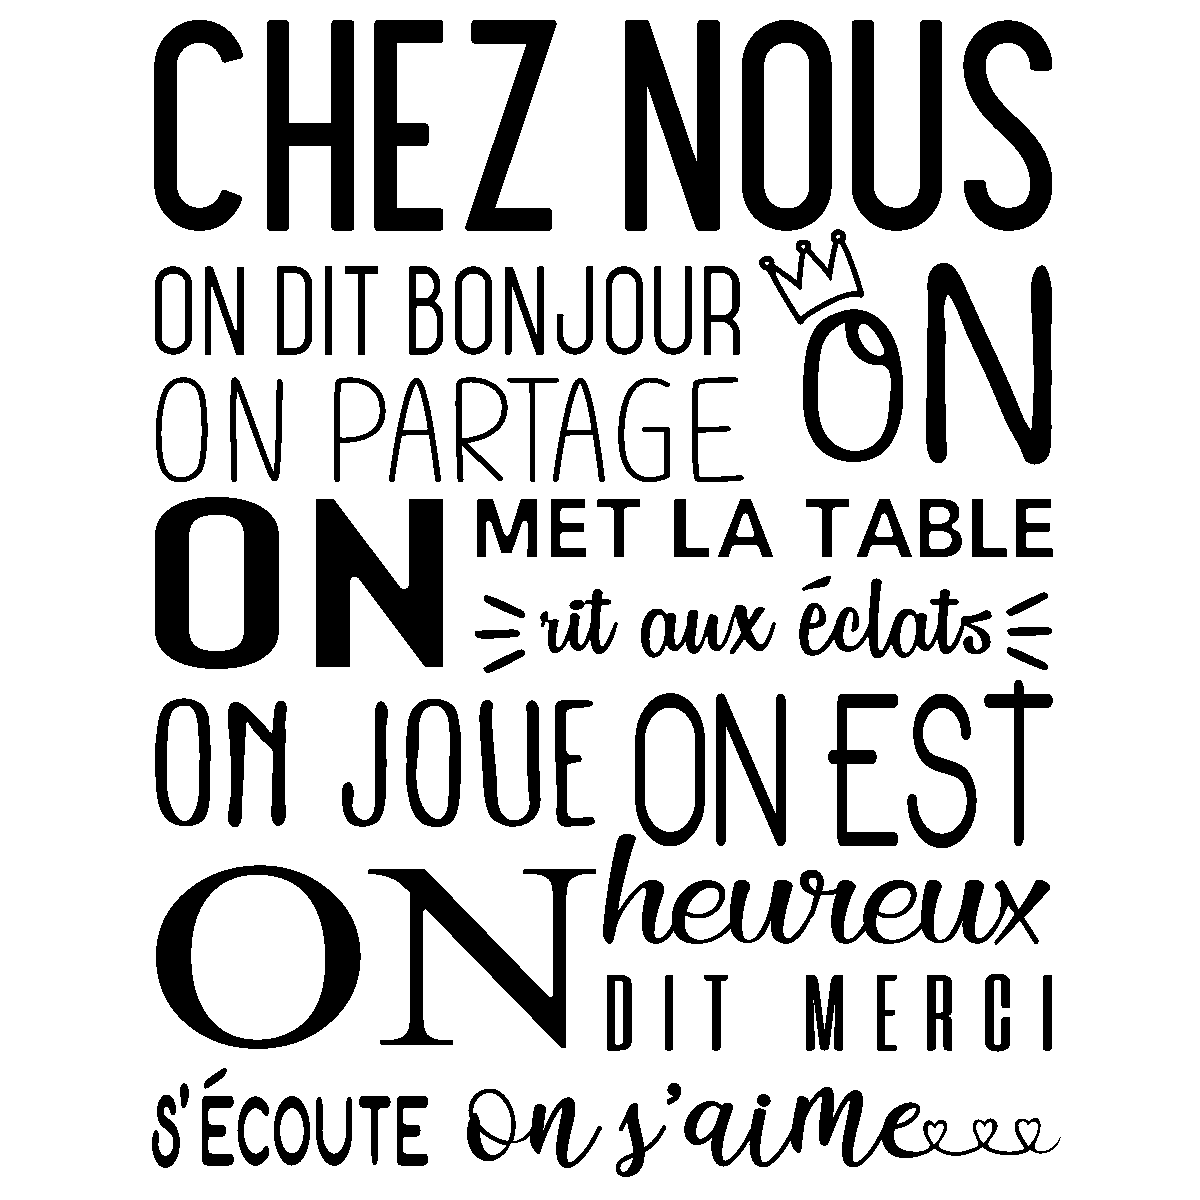 Quote Wall Decal Regle De La Maison Chez Nous Wall Decals Quote Wall Stickers French Ambiance Sticker